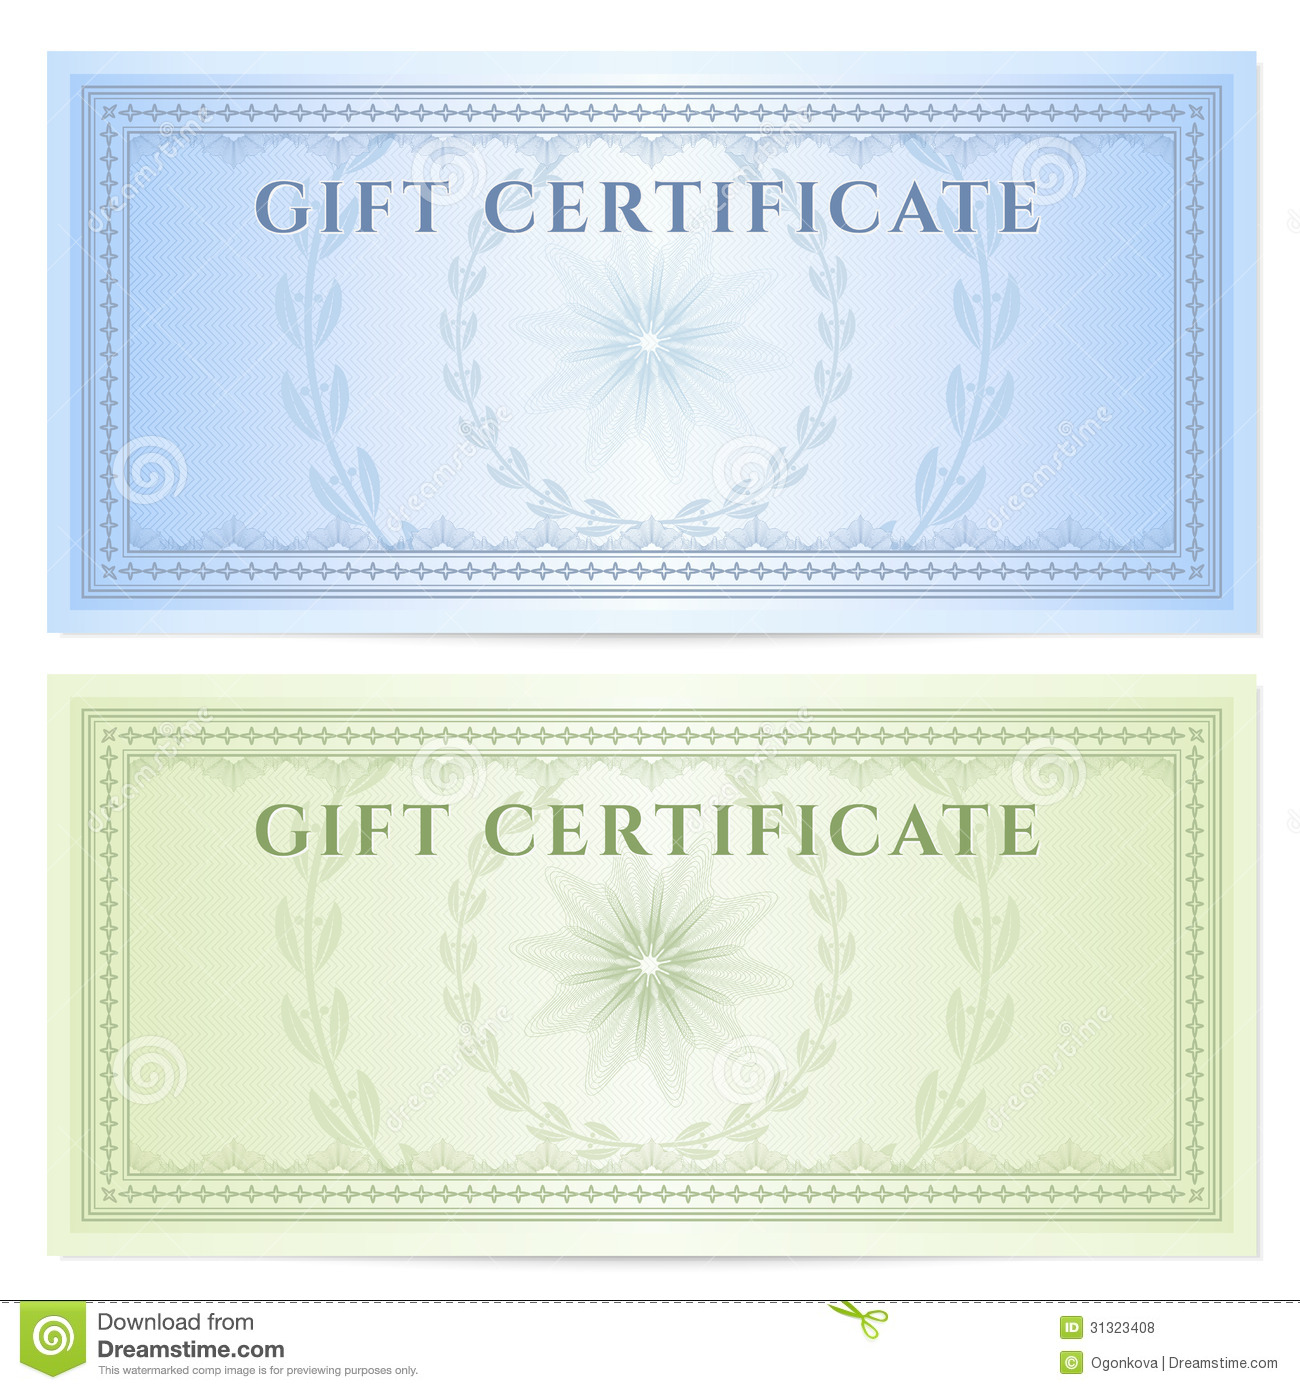 Gift Certificate Voucher Template With Pattern Stock Vector